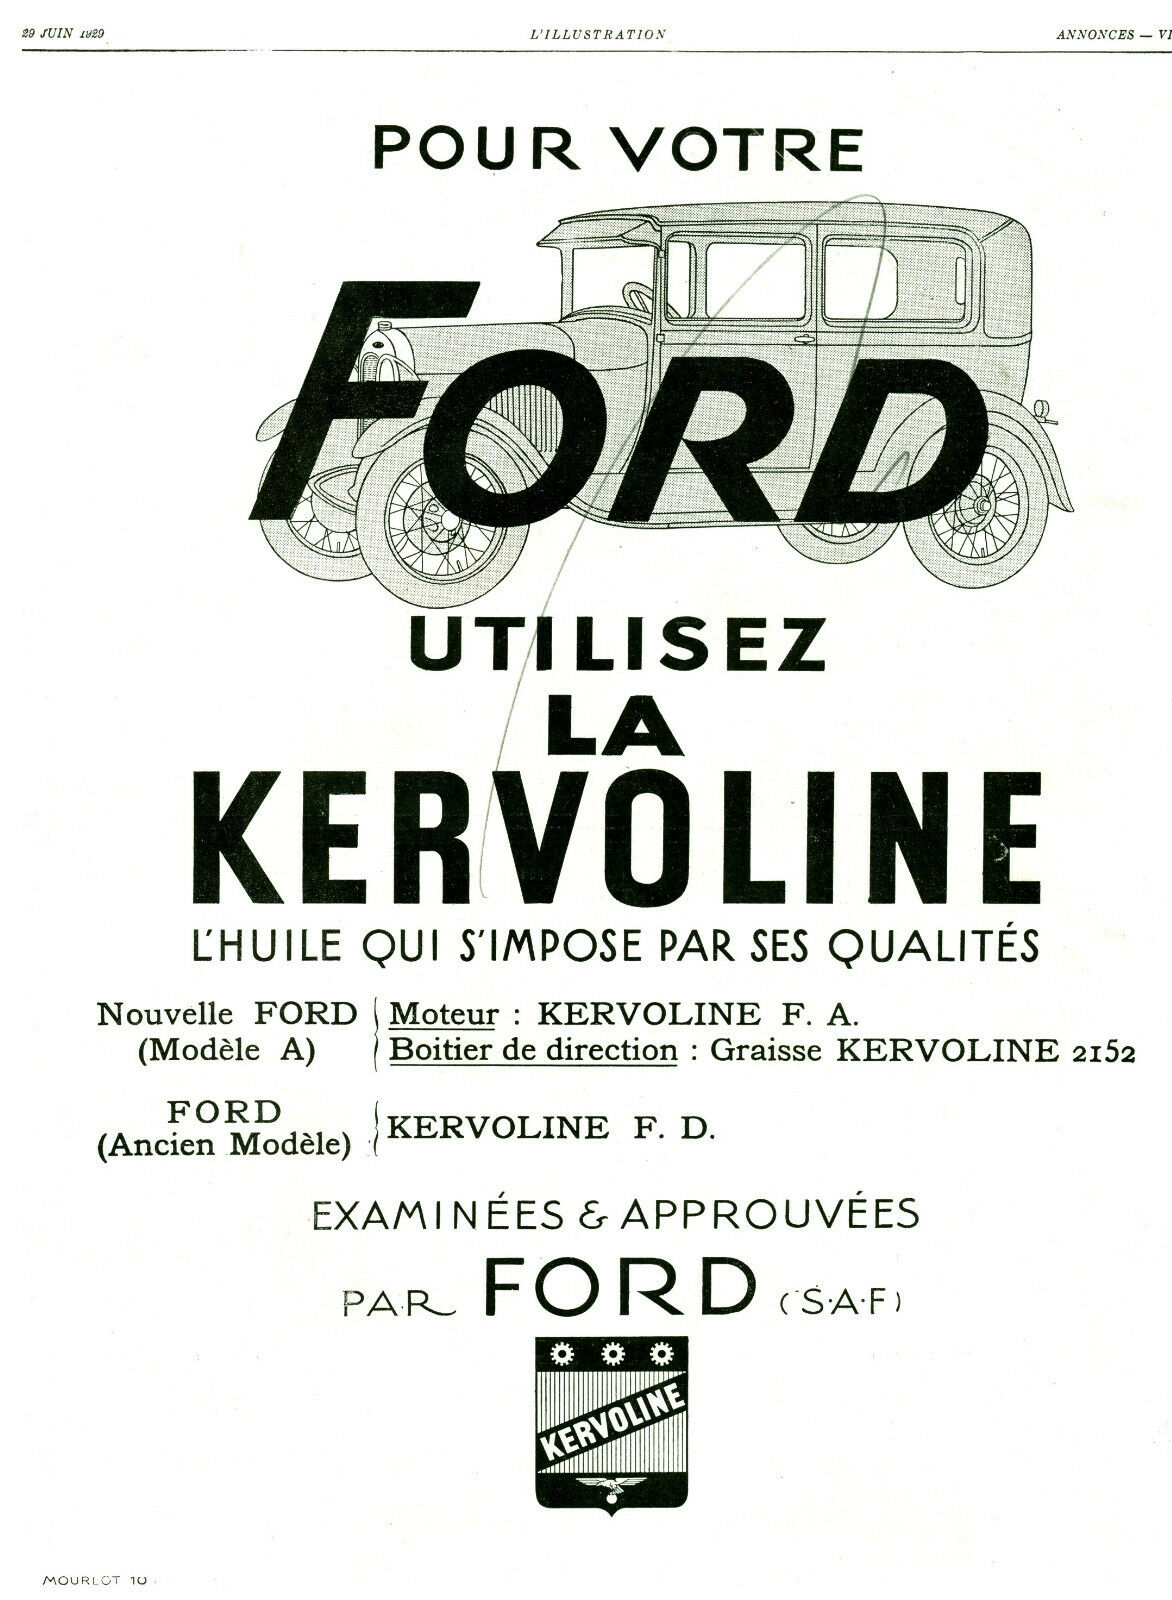 publicit ancienne voiture ford utilisez la kervoline 1929 issue de magazine eur 8 50. Black Bedroom Furniture Sets. Home Design Ideas